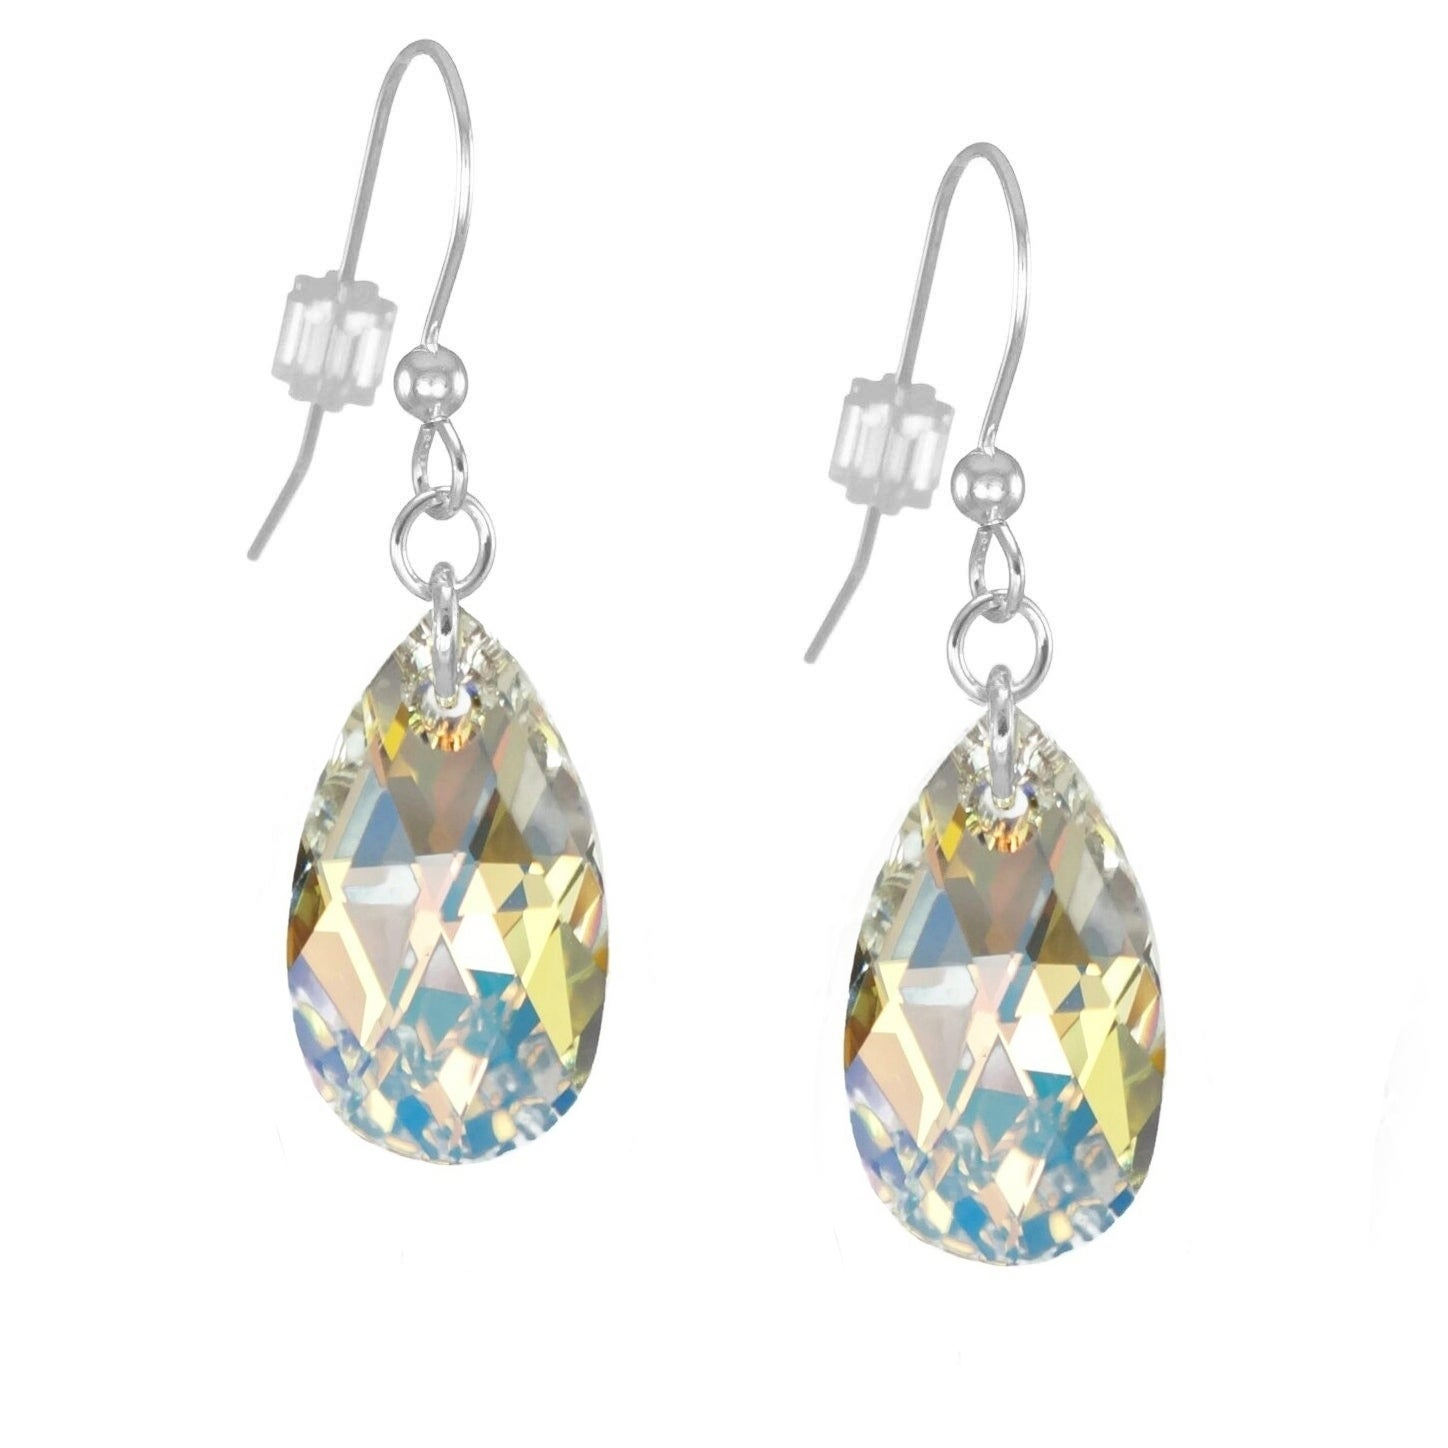 5d81337da Handmade Jewelry by Dawn Sterling Silver Crystal Aurora Borealis Pear  Earrings (USA)